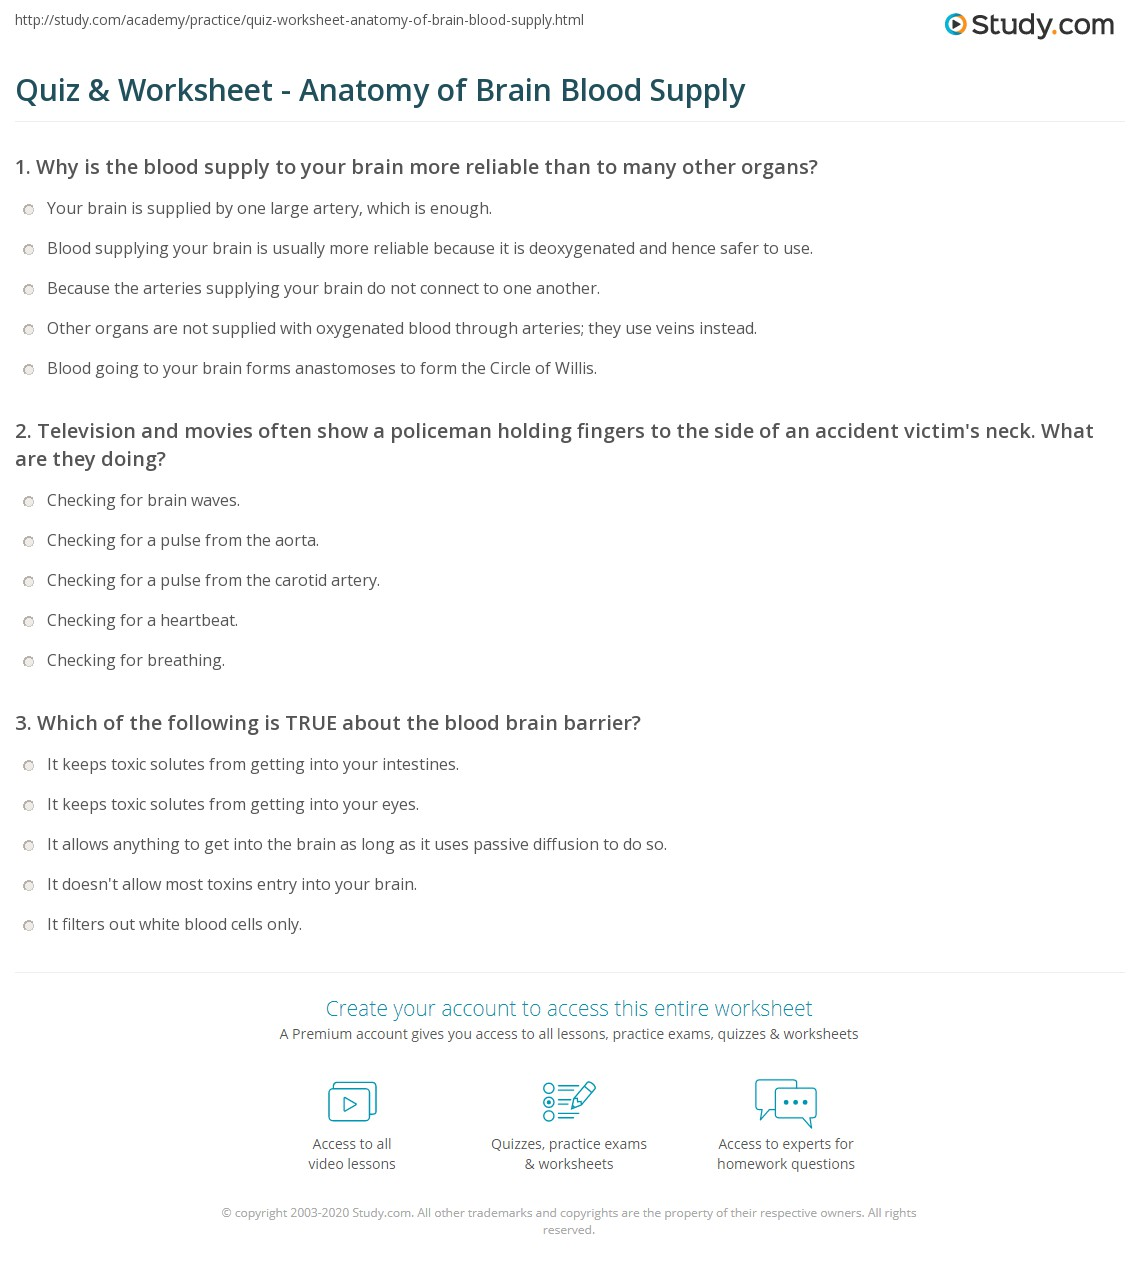 Quiz & Worksheet - Anatomy of Brain Blood Supply | Study.com